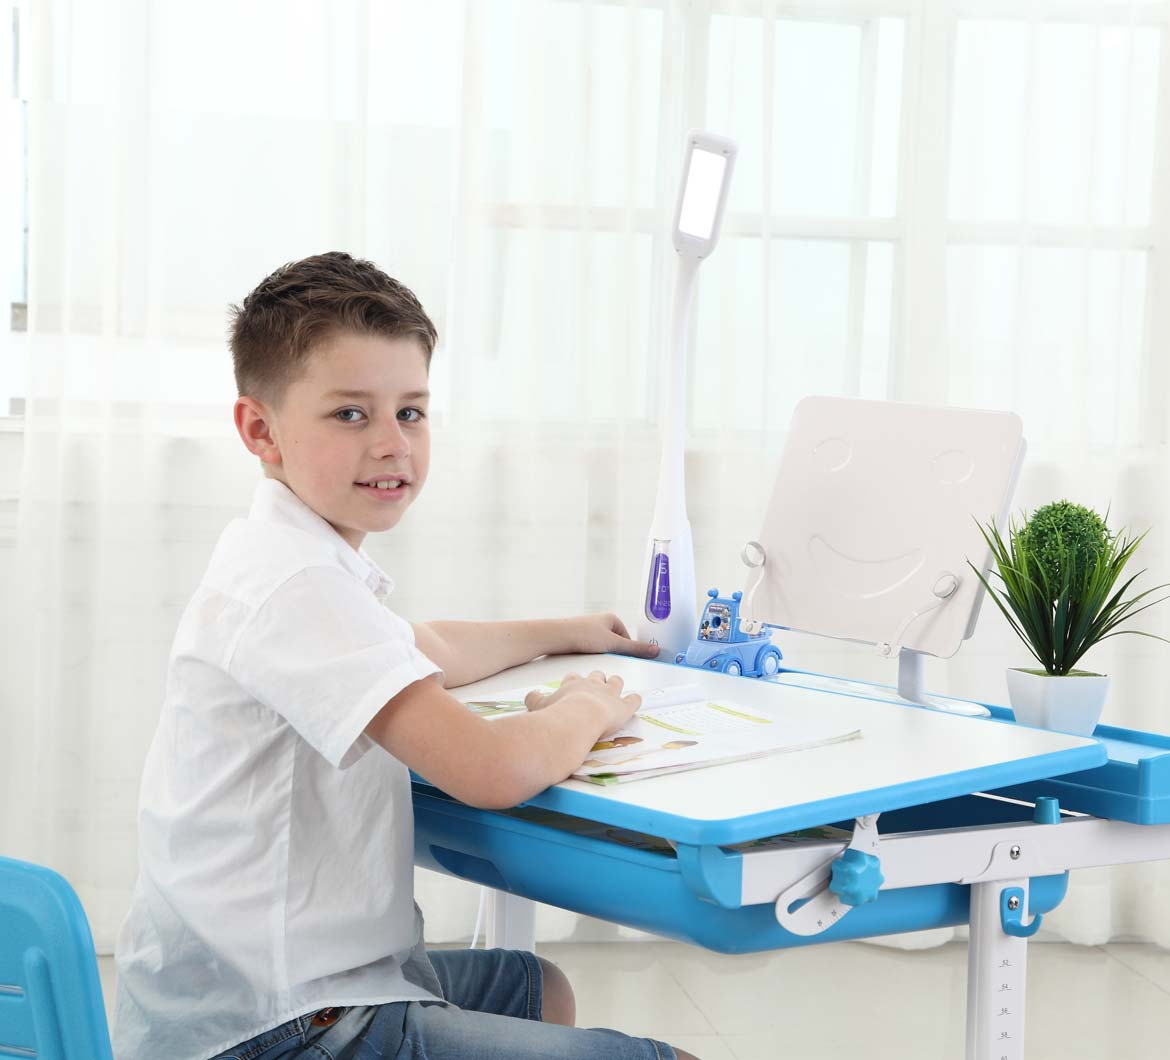 ergonomic-kids-desk-chair-study-table-blue-desk-for-boys-portfolio-sprite-blue-desk-3